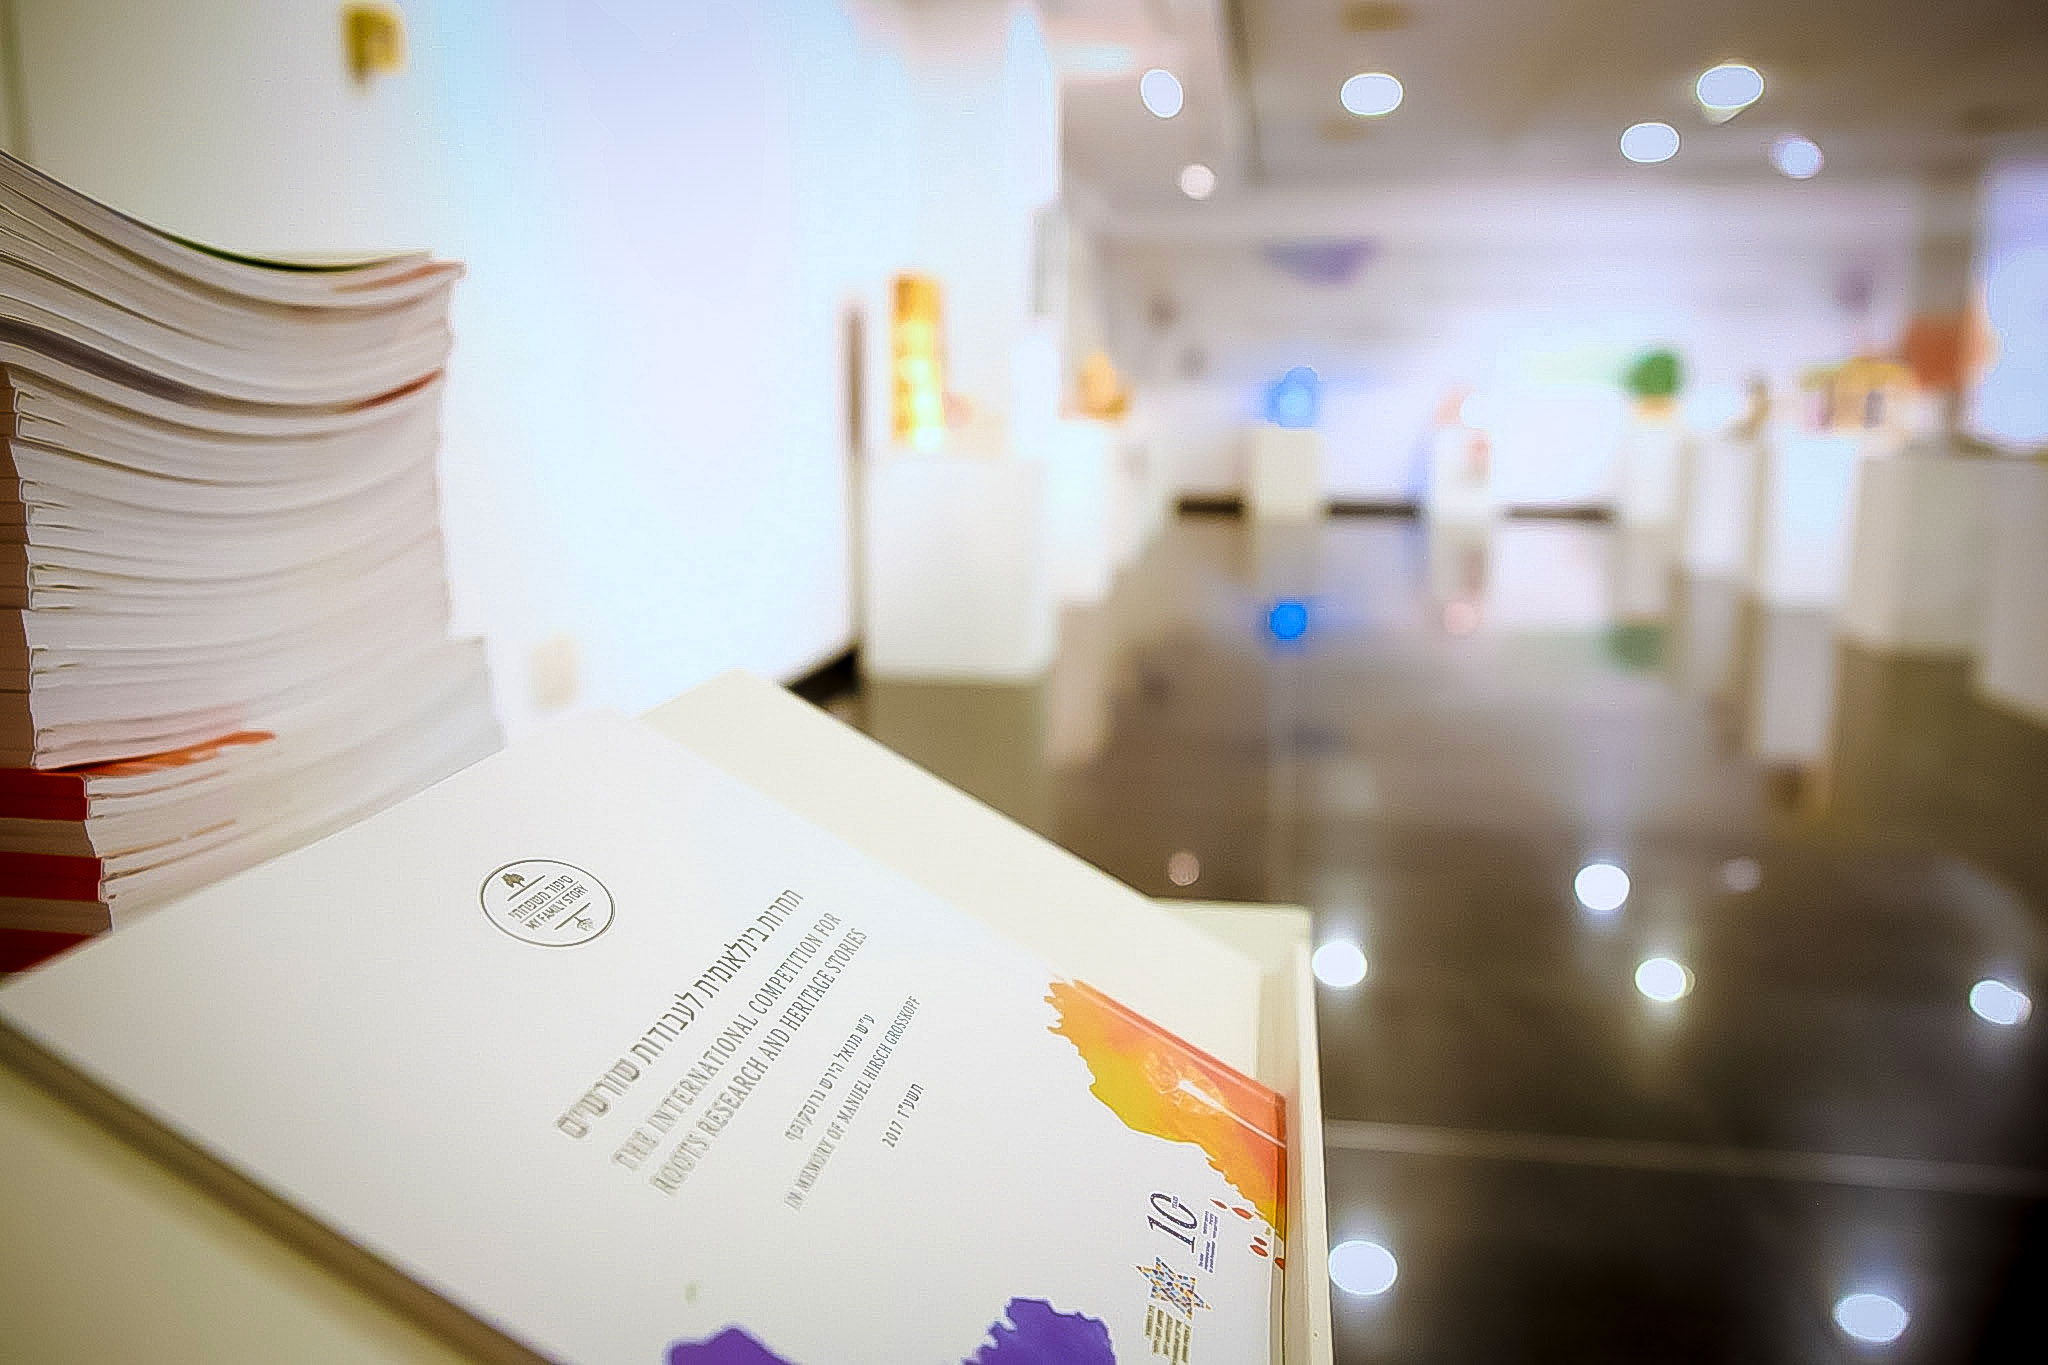 The exhibition book at the International Competition for Roots Research and Heritage Studies, at The Museum of the Jewish People at Beit Hatfutsot in Tel Aviv, Israel.